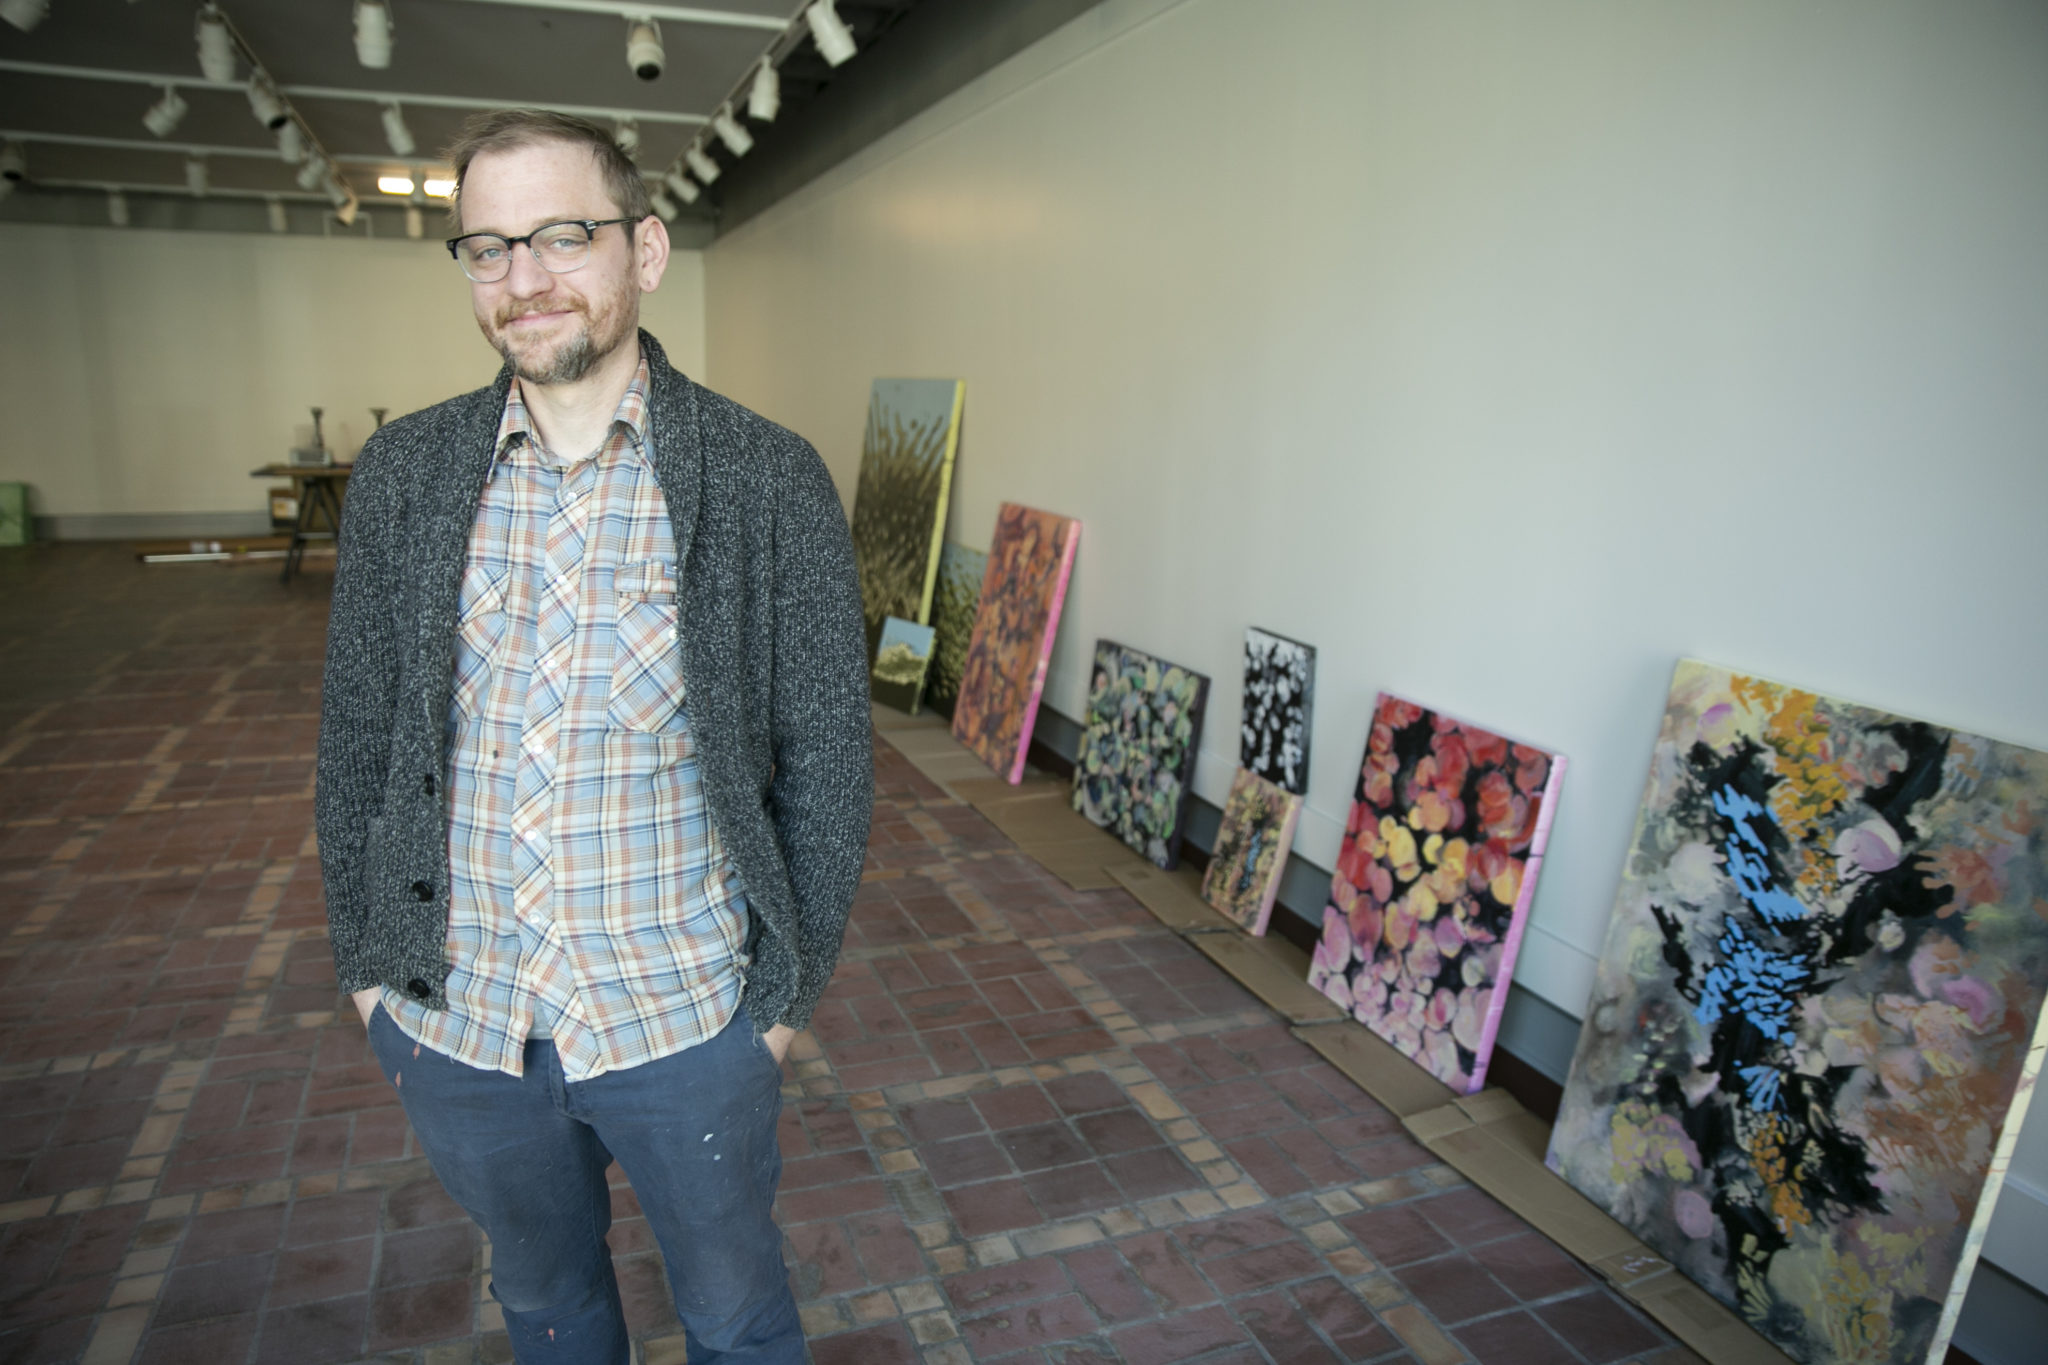 Ben Dunn is pictured in an art gallery